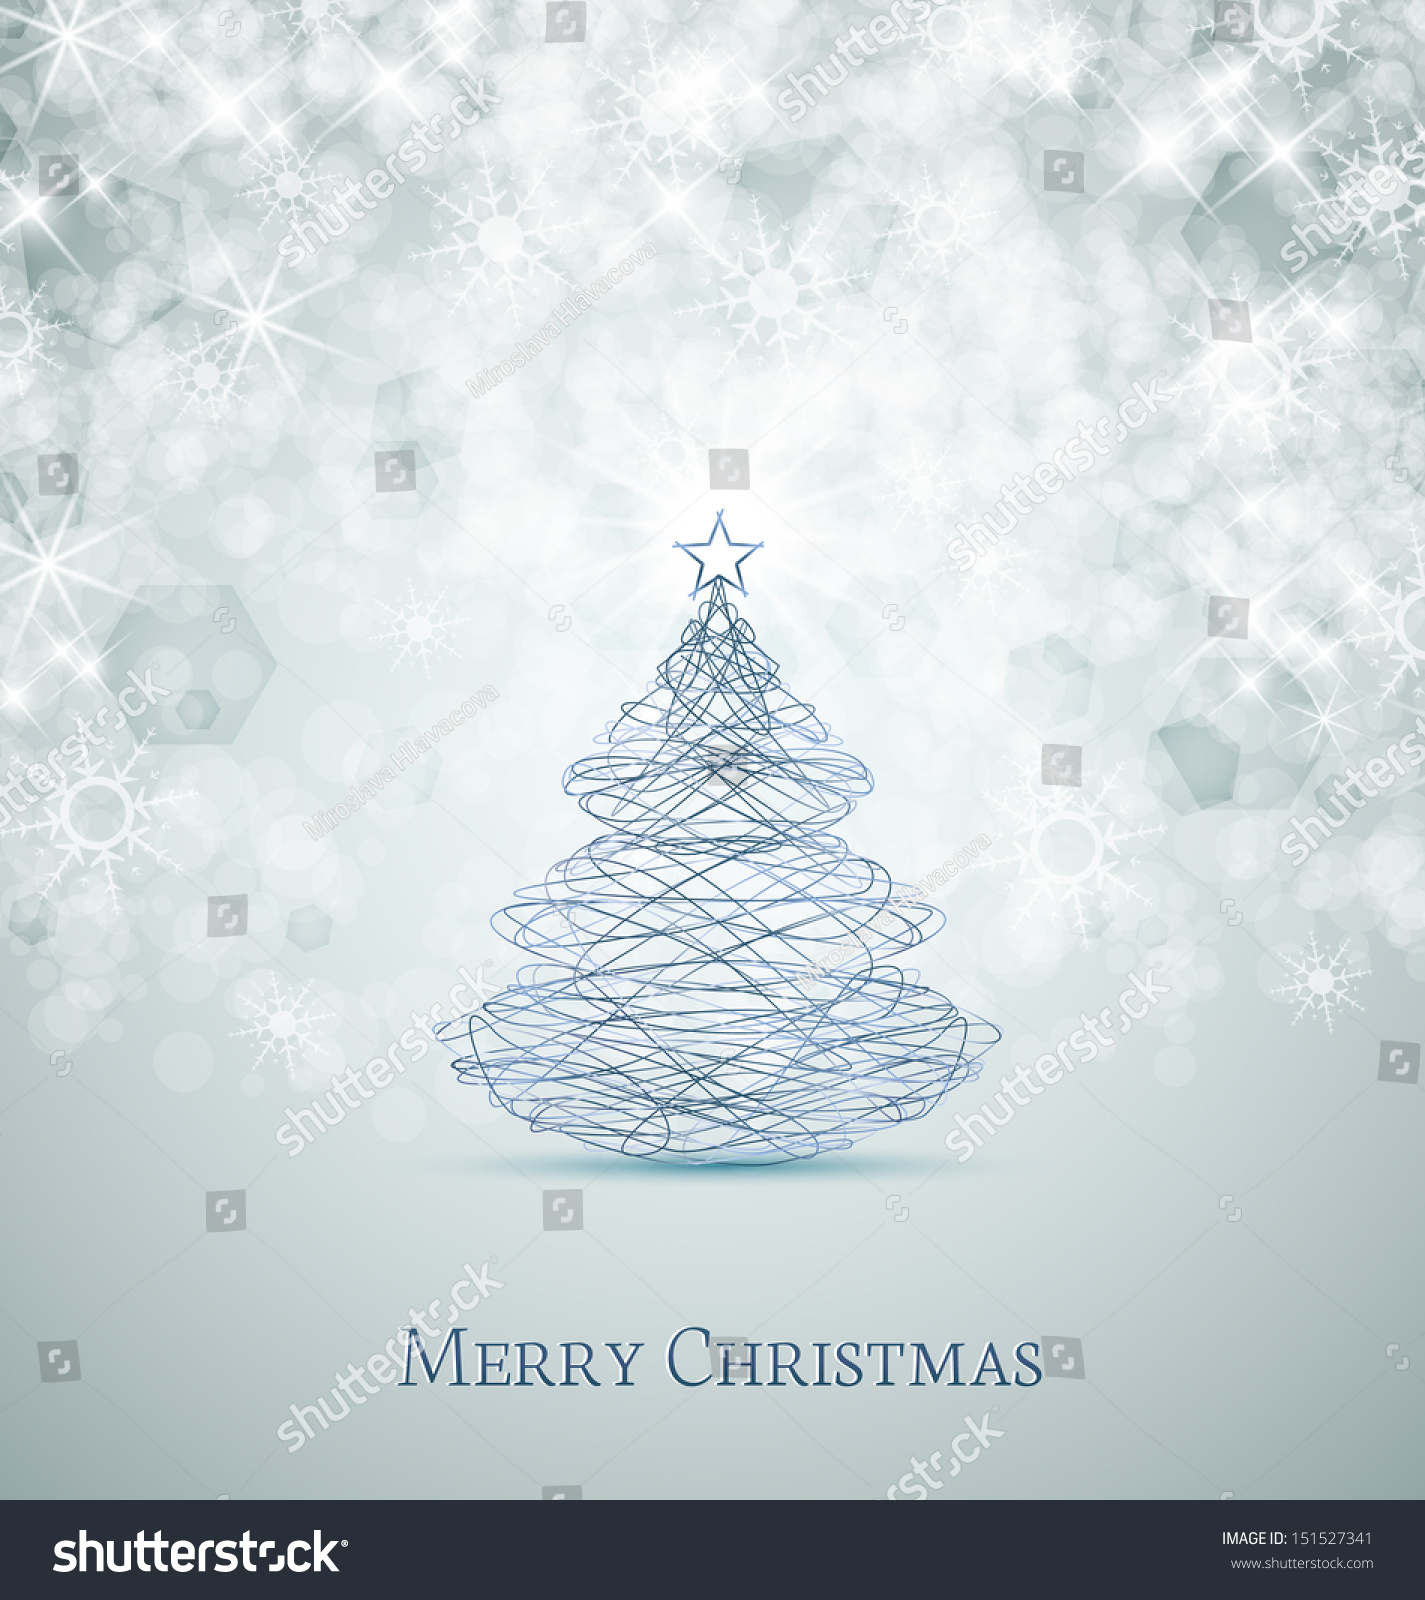 Merry Christmas Card Tree And Snowflakes